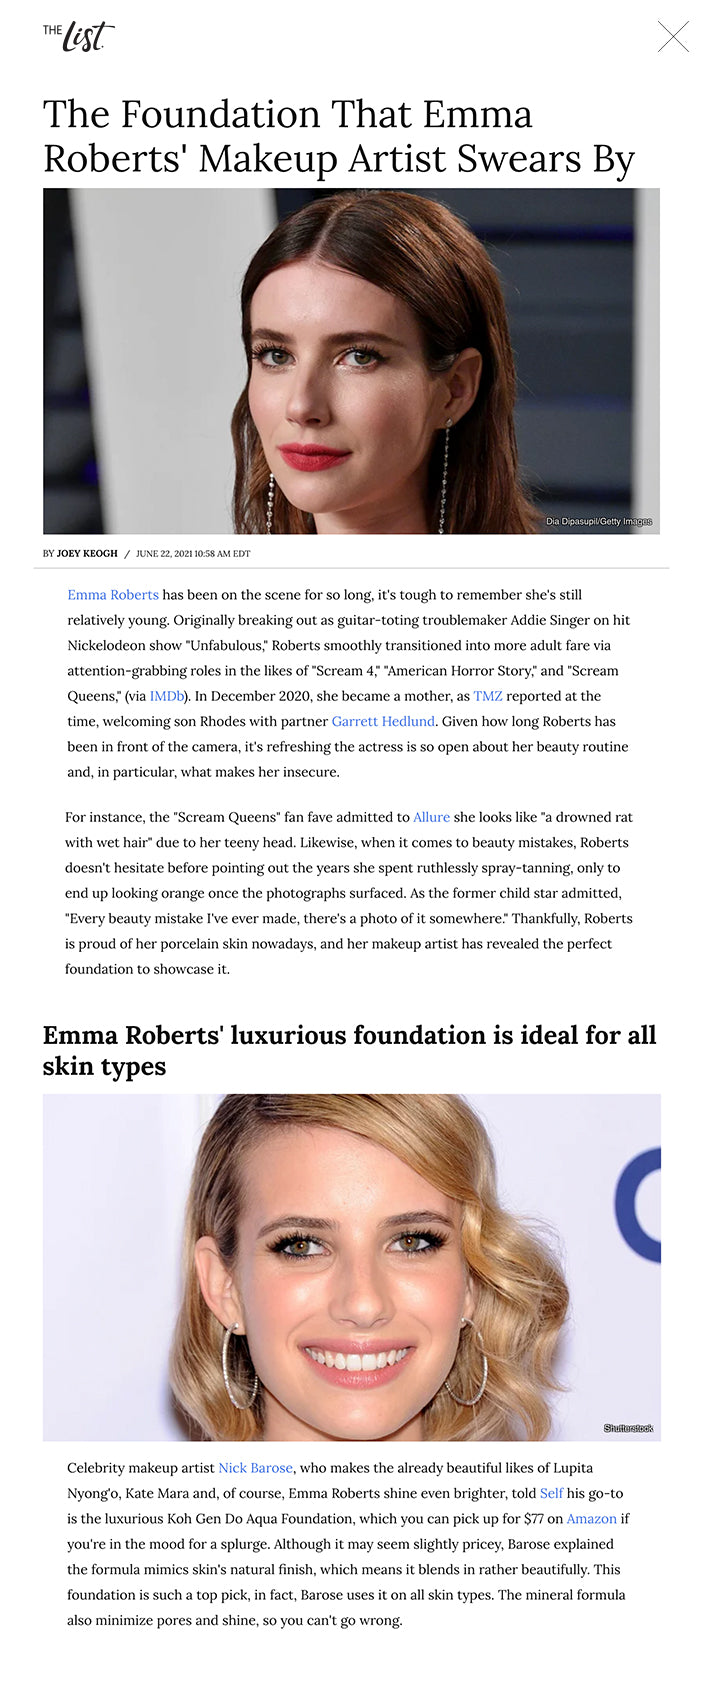 """The Foundation That Emma Roberts' Makeup Artist Swears By Dia Dipasupil/Getty Images BYJOEY KEOGH/JUNE 22, 2021 10:58 AM EDT Emma Roberts has been on the scene for so long, it's tough to remember she's still relatively young. Originally breaking out as guitar-toting troublemaker Addie Singer on hit Nickelodeon show """"Unfabulous,"""" Roberts smoothly transitioned into more adult fare via attention-grabbing roles in the likes of """"Scream 4,""""""""American Horror Story,""""and """"Scream Queens,""""(via IMDb). In December 2020, she became a mother, as TMZ reported at the time, welcoming son Rhodes with partner Garrett Hedlund.Given how long Roberts has been in front of the camera, it's refreshingthe actress is so open about her beauty routine and, in particular, what makes her insecure.   For instance, the """"Scream Queens""""fan fave admitted to Allure she looks like """"a drowned rat with wet hair"""" due to her teeny head. Likewise, when it comes to beauty mistakes,Roberts doesn't hesitate before pointing out the years she spent ruthlessly spray-tanning, only to end up looking orange once the photographs surfaced.As the former child star admitted, """"Every beauty mistake I've ever made, there's a photo of it somewhere."""" Thankfully, Roberts is proud of her porcelain skin nowadays, and her makeup artist has revealed the perfect foundation to showcase it.  Emma Roberts' luxurious foundation is ideal for all skin types Shutterstock Celebrity makeup artistNick Barose, who makes the already beautiful likes of Lupita Nyong'o, Kate Mara and, of course, Emma Roberts shine even brighter, toldSelfhis go-to is the luxuriousKoh Gen Do Aqua Foundation, which you can pick up for $77 on Amazon if you're in the mood for a splurge. Although it may seem slightly pricey, Barose explained the formula mimics skin's natural finish, which means it blends in rather beautifully. This foundation is such a top pick, in fact, Barose uses it on all skin types. The mineral formula also minimize pores and shine, so you can't go """